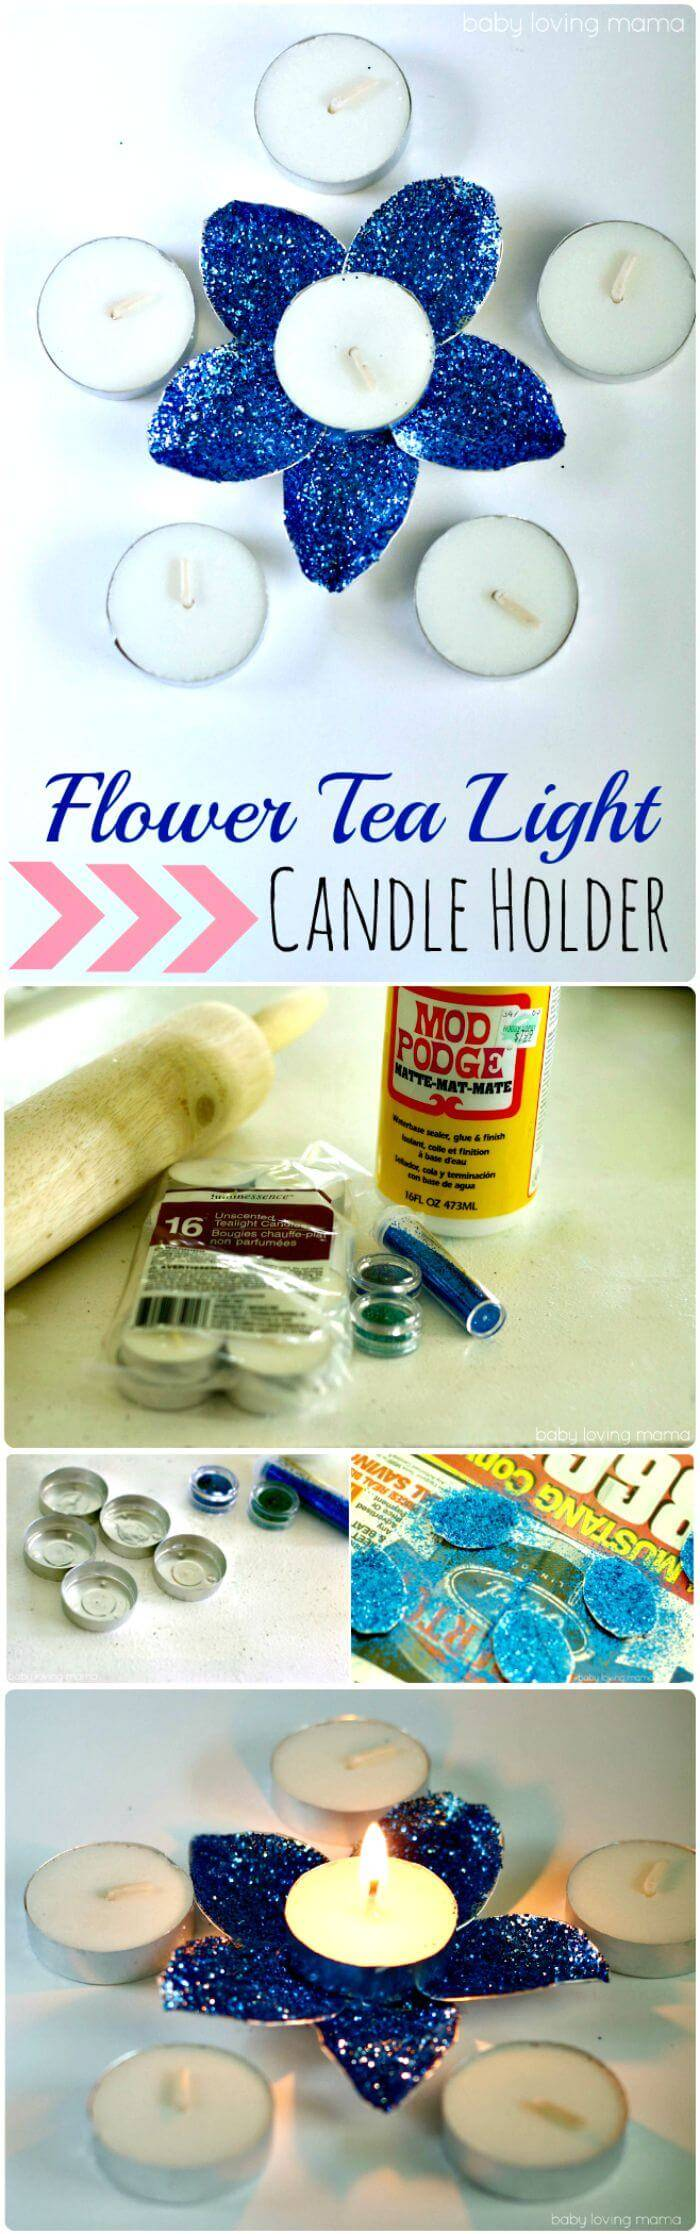 DIY Flower Tea Light Candle Holder